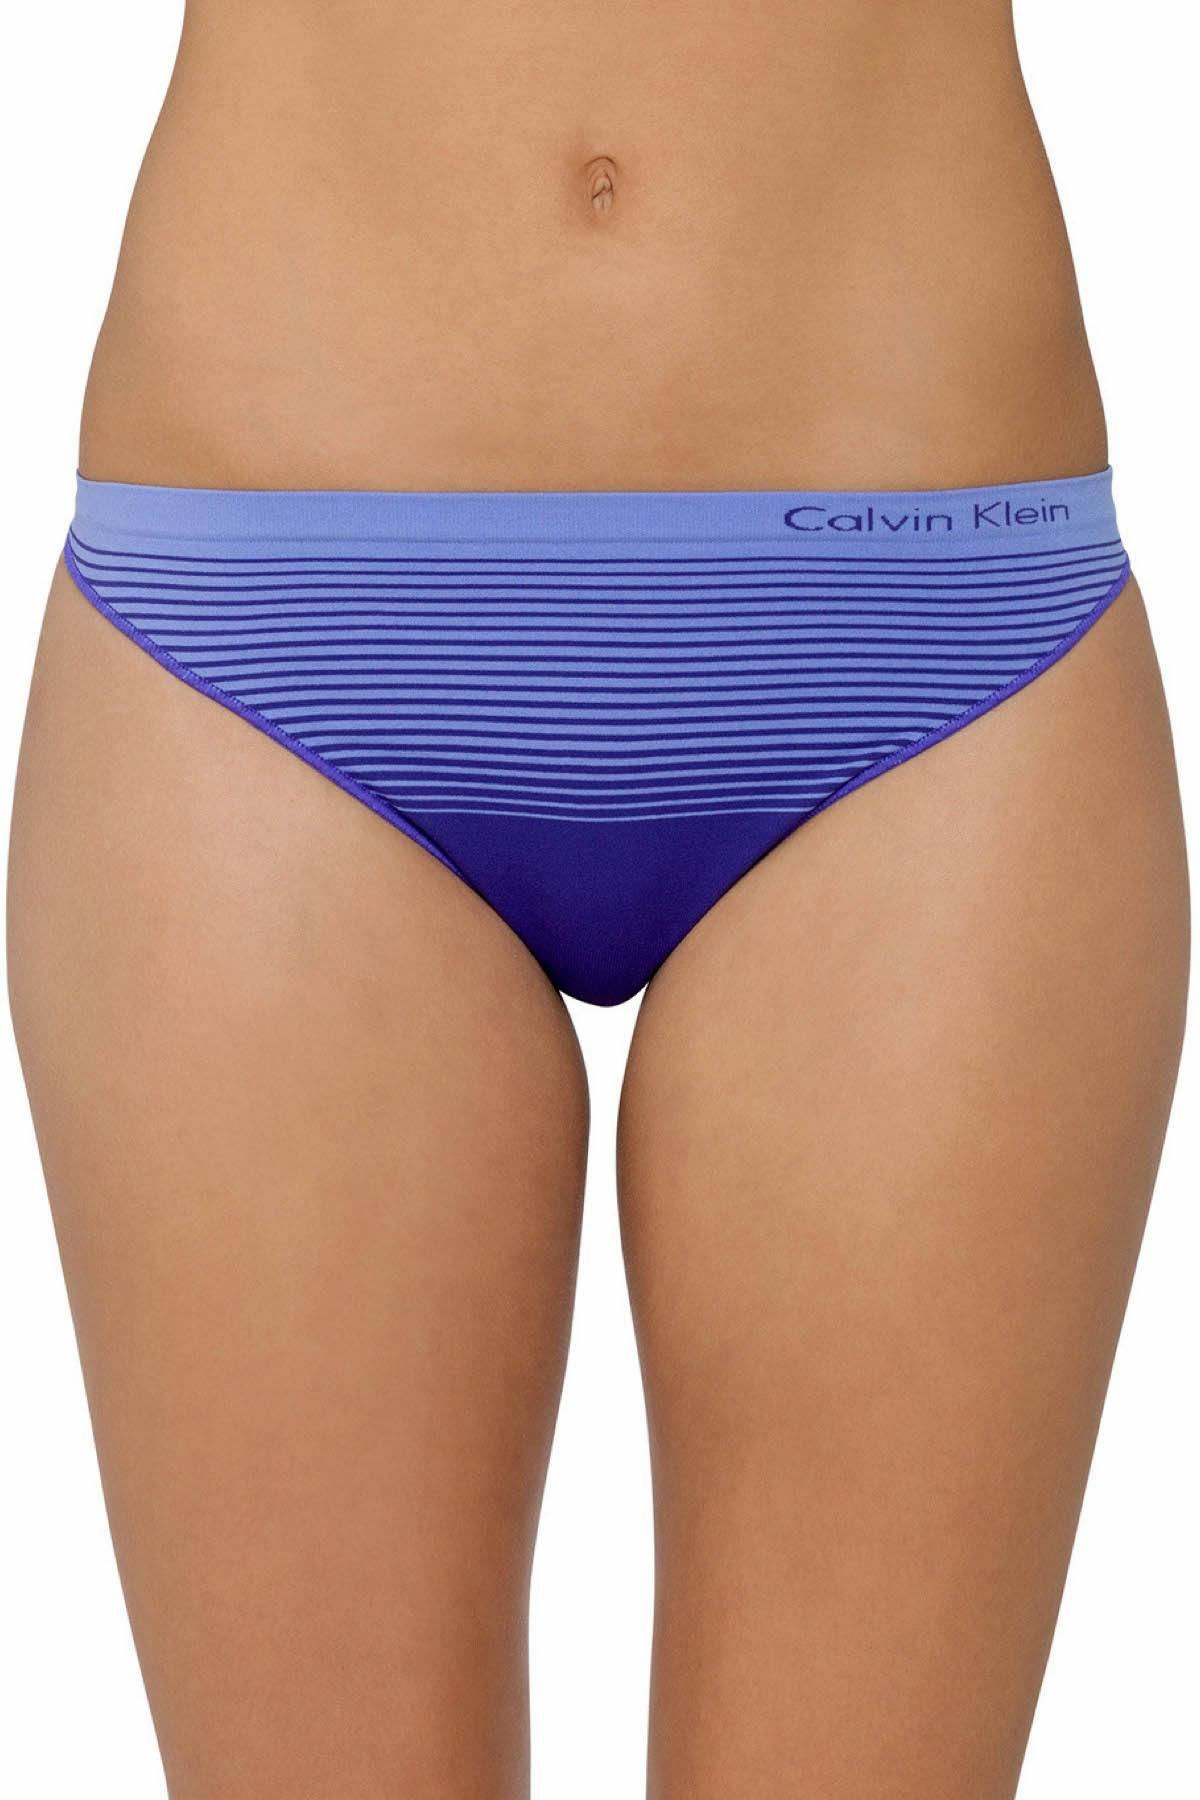 Calvin Klein Stimulate/Tranquil-Blue Seamless Illusions Thong